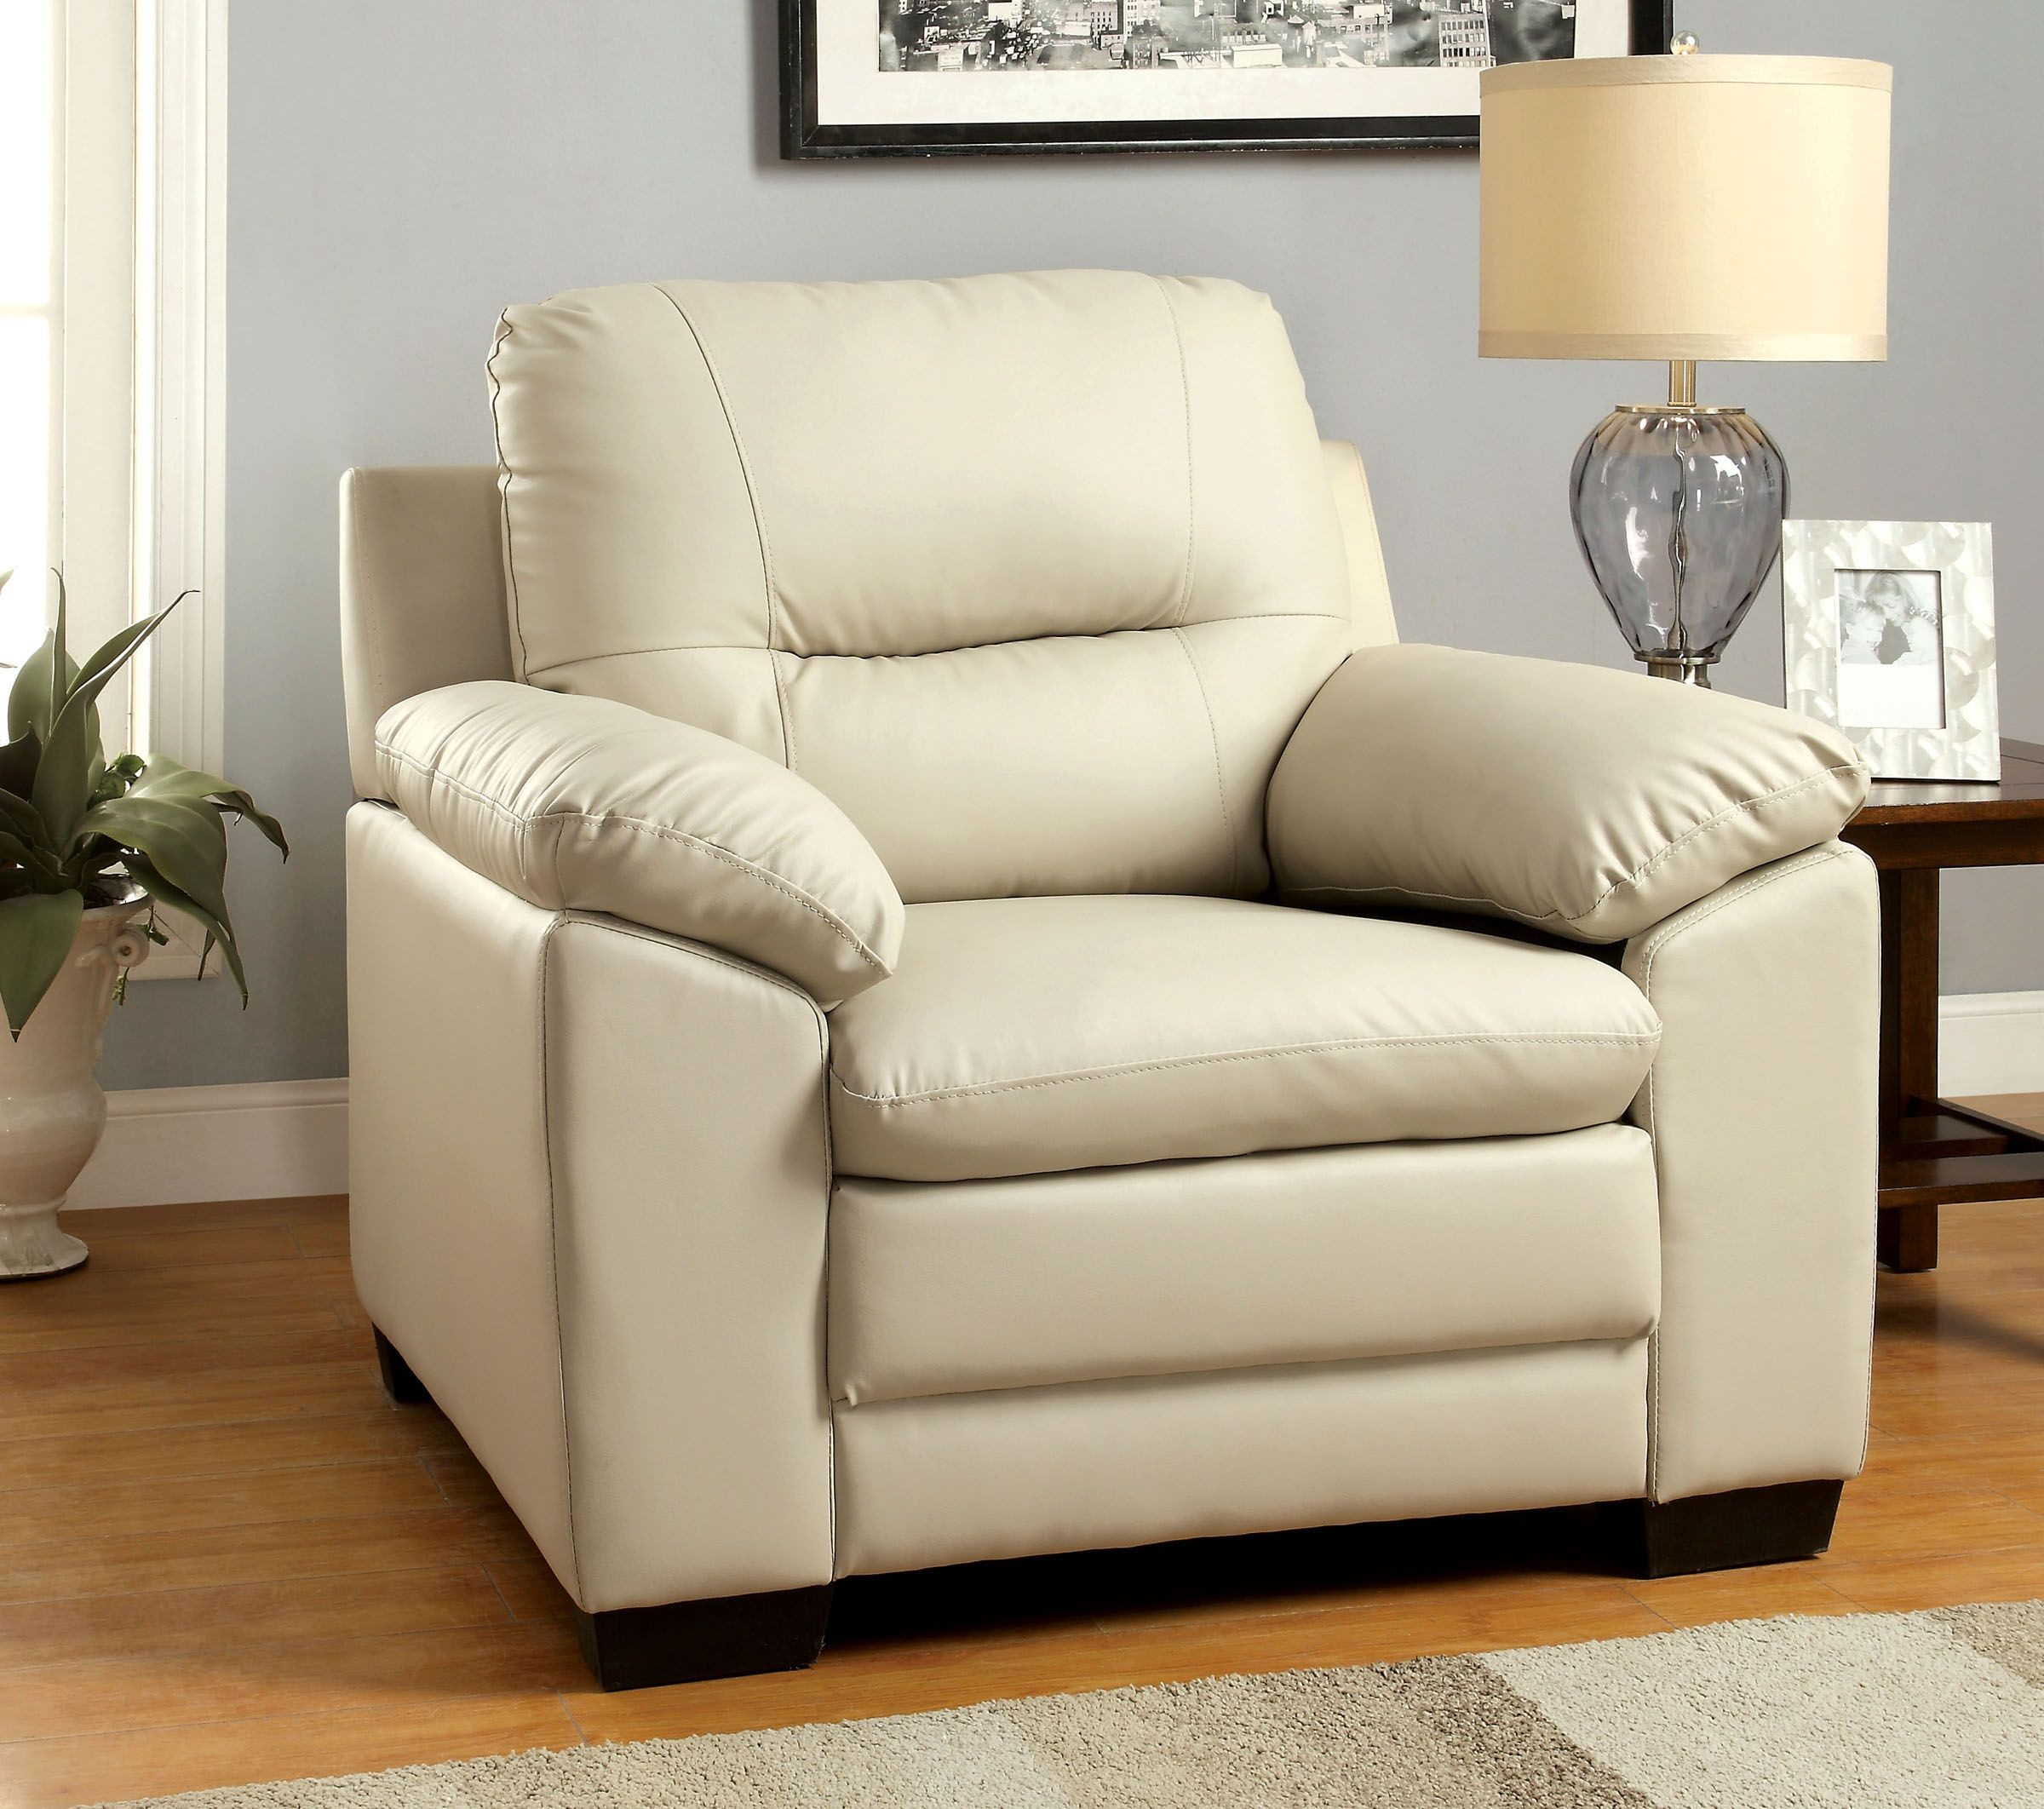 Ivory Living Room Furniture: Furniture Of America Parma Ivory Leatherette Living Room